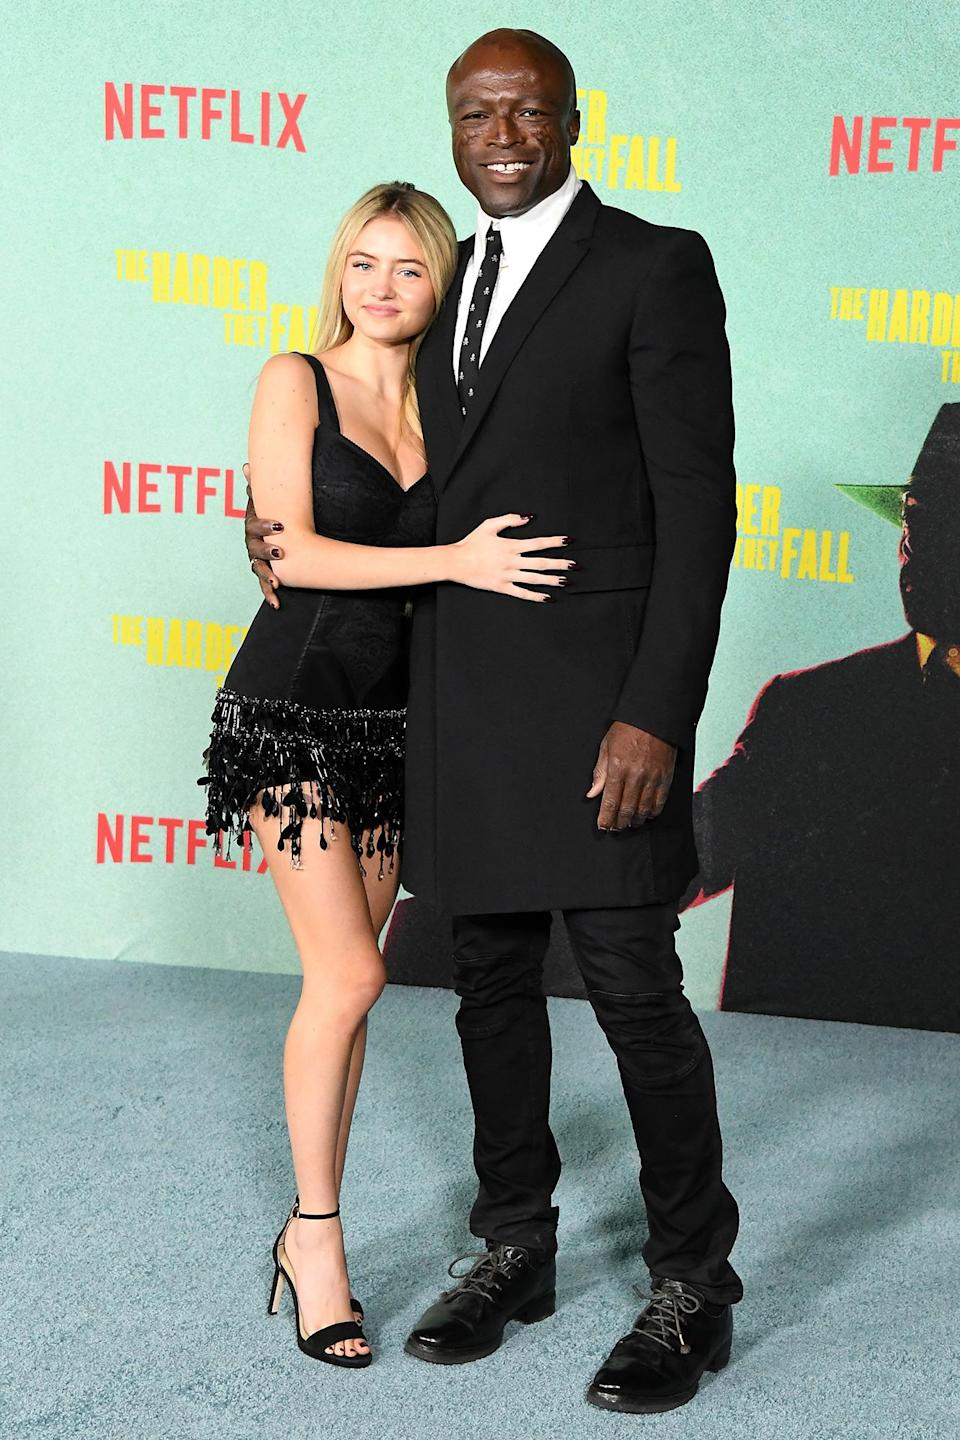 <p>Leni Klum and dad Seal pose at <em>The Harder They Fall</em> premiere at Shrine Auditorium and Expo Hall on Oct. 13 in L.A.</p>